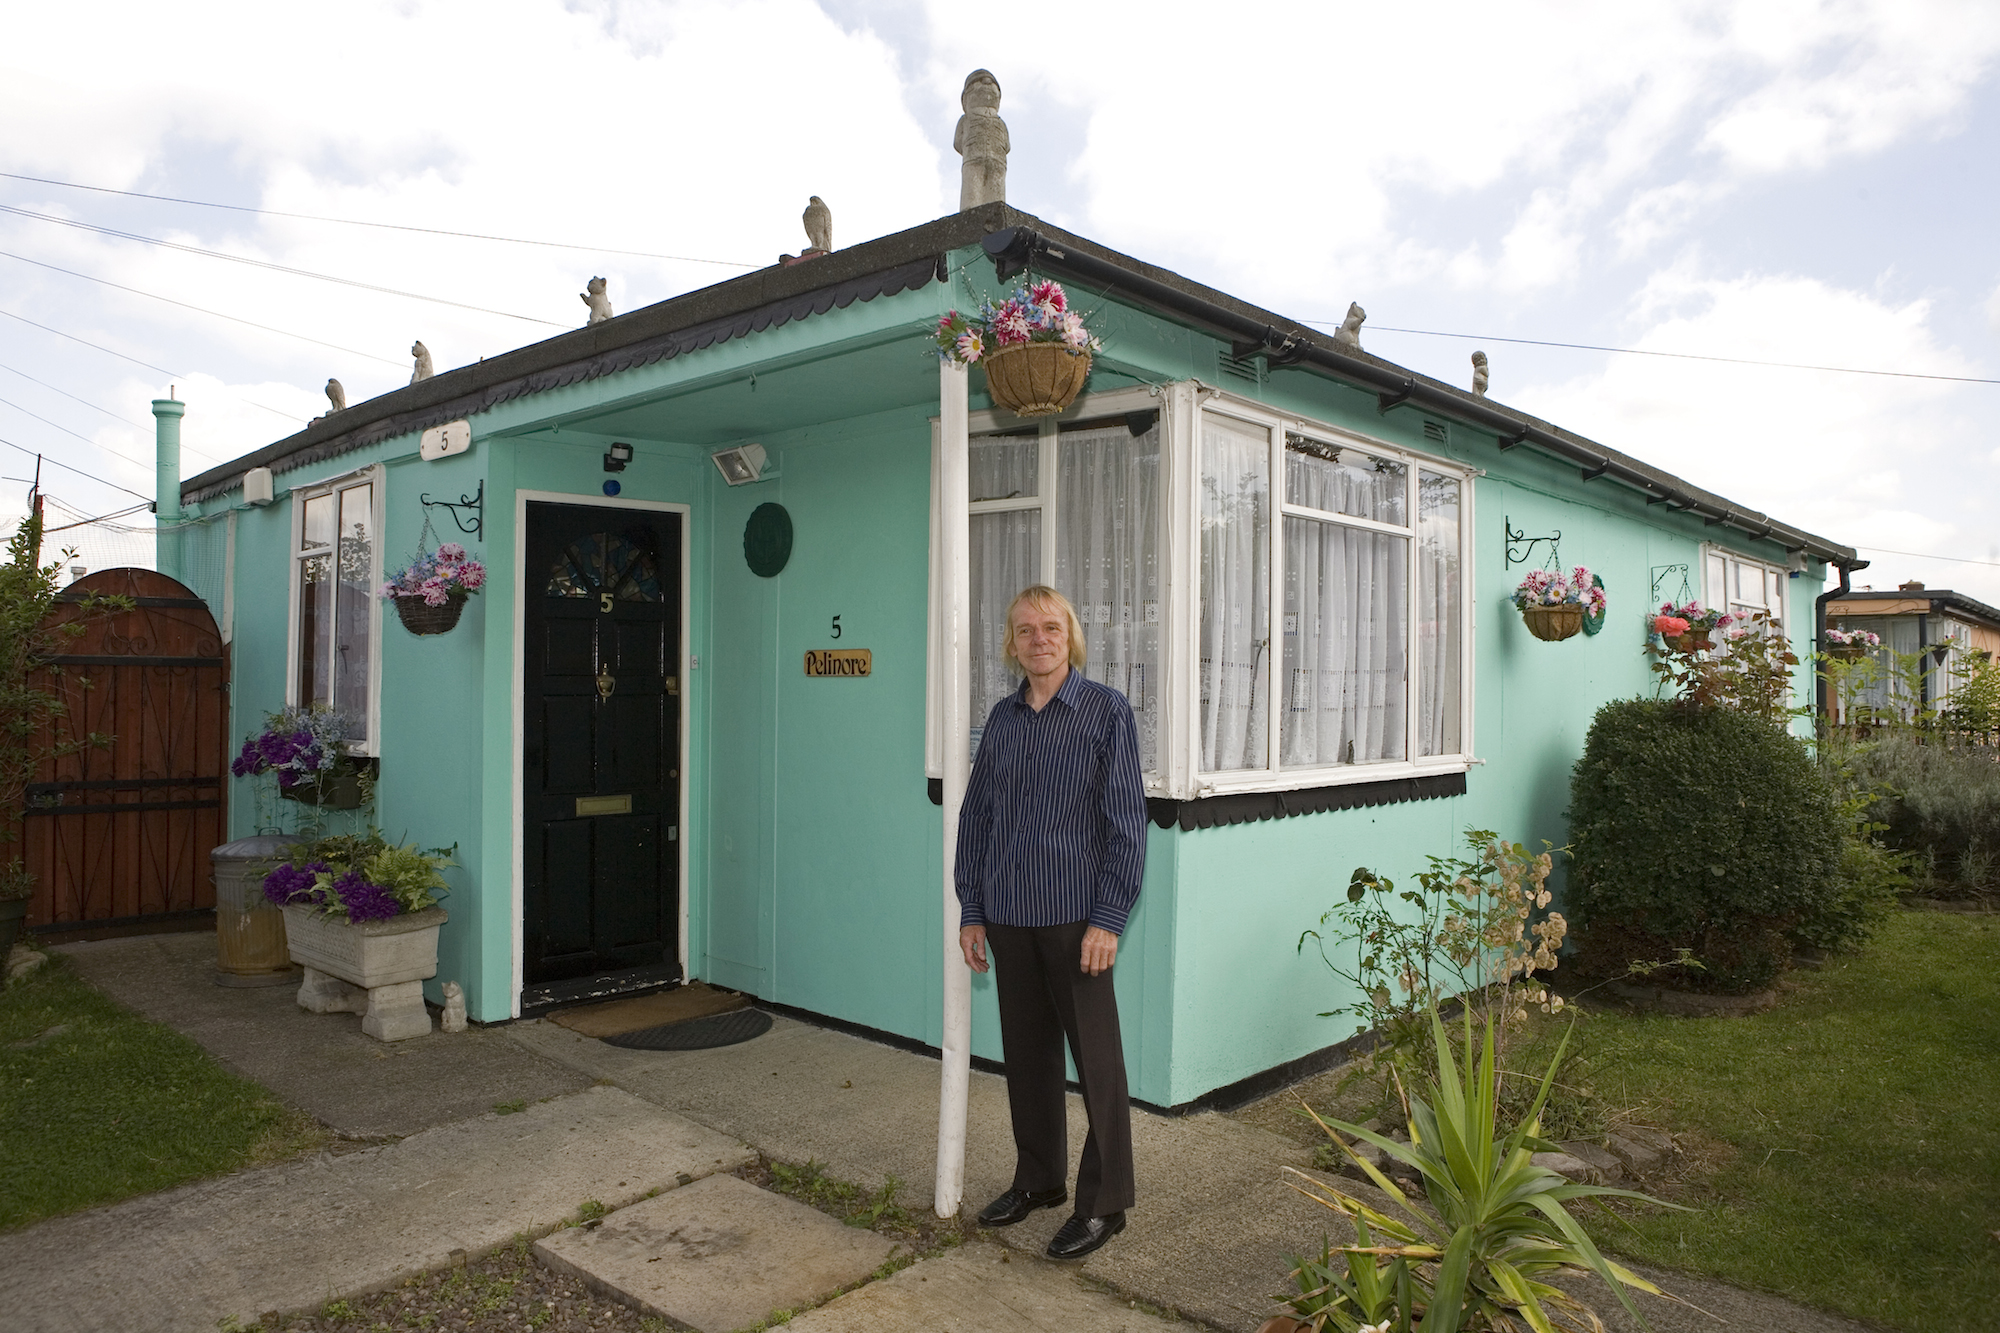 Jim Blackender in front of his prefab in 2009. Jim fought and lost. He raised an army of residents to save the prefabs from demolition but the battle ended up in a ballot which led by 54% to 46% to the 'regeneration' of the estate. By regeneration, the council means demolition of the post-war bungalows and replacement with double and triple storeys dwellings. The idea is to triple the density of the population but it's difficult to find out more as Lewisham is remaining very discreet about the future. The demolition process should have started in October 2012 but in June 2013, it still hadn't begun. On the estate, more and more prefabs are being boarded up. Residents were hoping they would be rehoused in new houses at the same location but it doesn't look like it will happen, so they are ending up accepting other housing options offered by the council as Jim and his wife Lauren did. In September 2012, they left their prefab for good for a 2 bedroom attached house in Rochester, Kent. I paid them a visit in Winter 2013. They both became very emotional when talking about their prefab. The scar hasn't healed yet. 'In a prefab, youíve got a two-bedroom detached property and unless you have lots of money, youíre never ever going to get that again. It was something we were fortunate to have as council tenants. Once the prefabs are gone, theyíre gone forever; youíre never going to get back to a place like that. I liked everything about the prefab ñ I couldn't put a finger on it. It was the people, the location. When we moved in 20-odd years ago, there was a really strong community, and there was no way anyone could have taken that place from the residents. But itís been left to rot, the Council should have been carrying out repairs, painting and redecorating, so people would want to live there, but hardly anything has been done to the estate. Itís depressing to watch it fall into disrepair'.